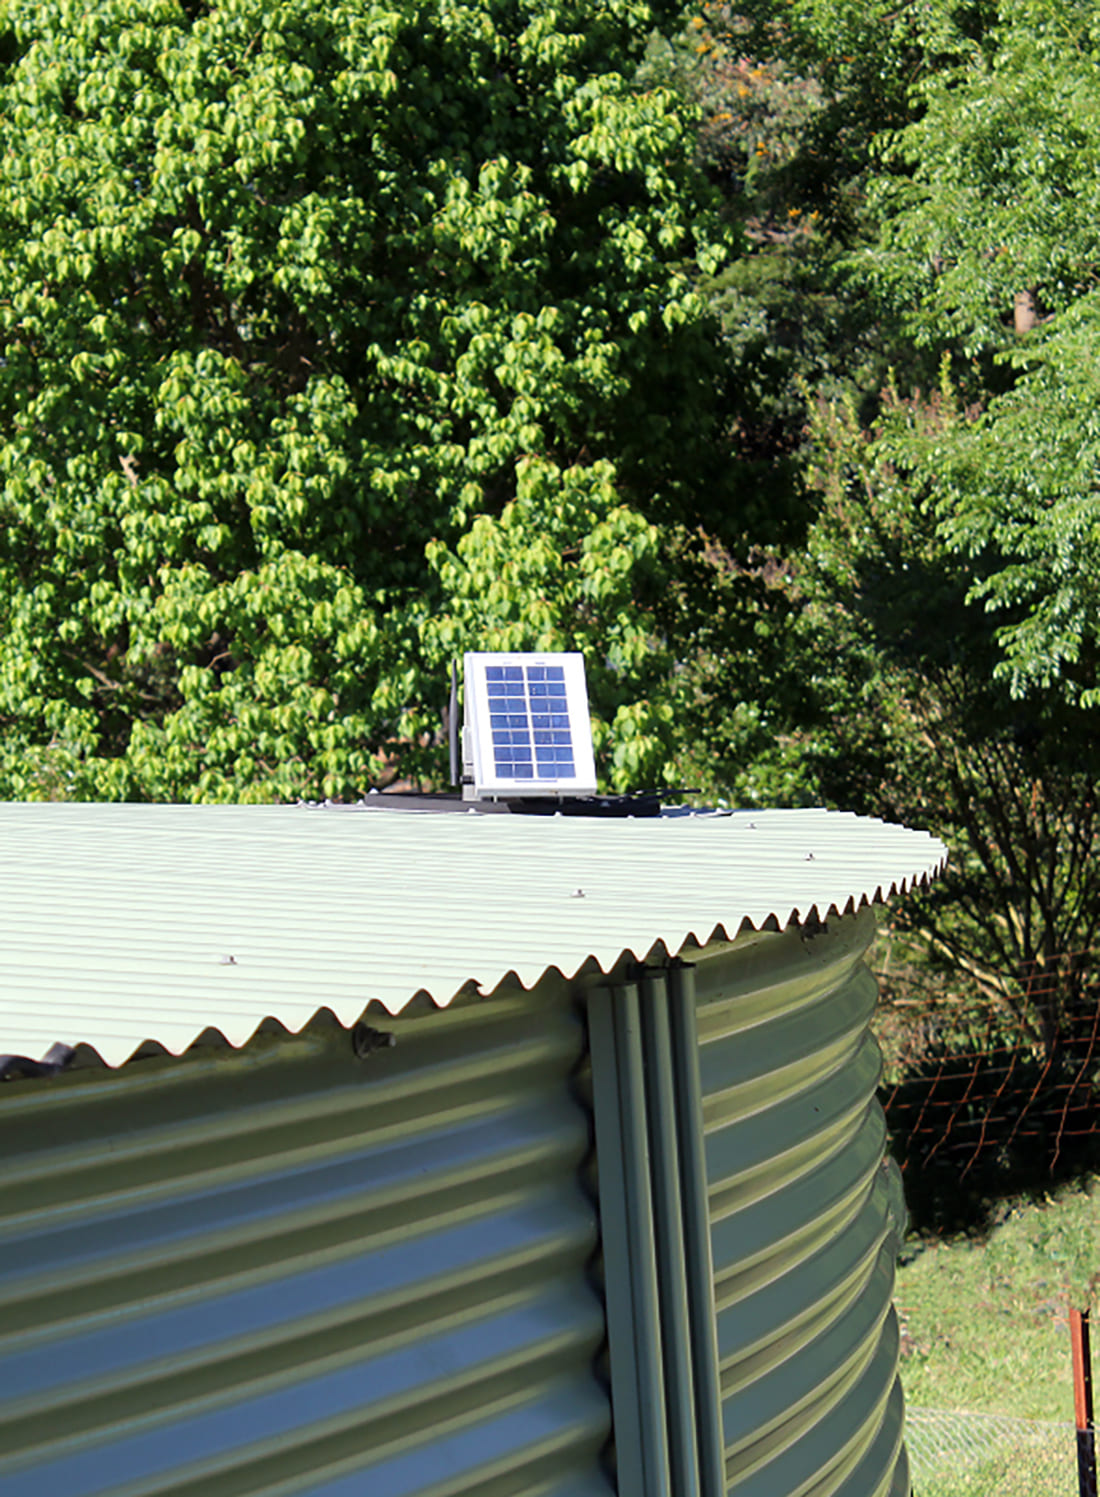 Waspmote Plug & Sense! installed at the nursery and the irrigation tank